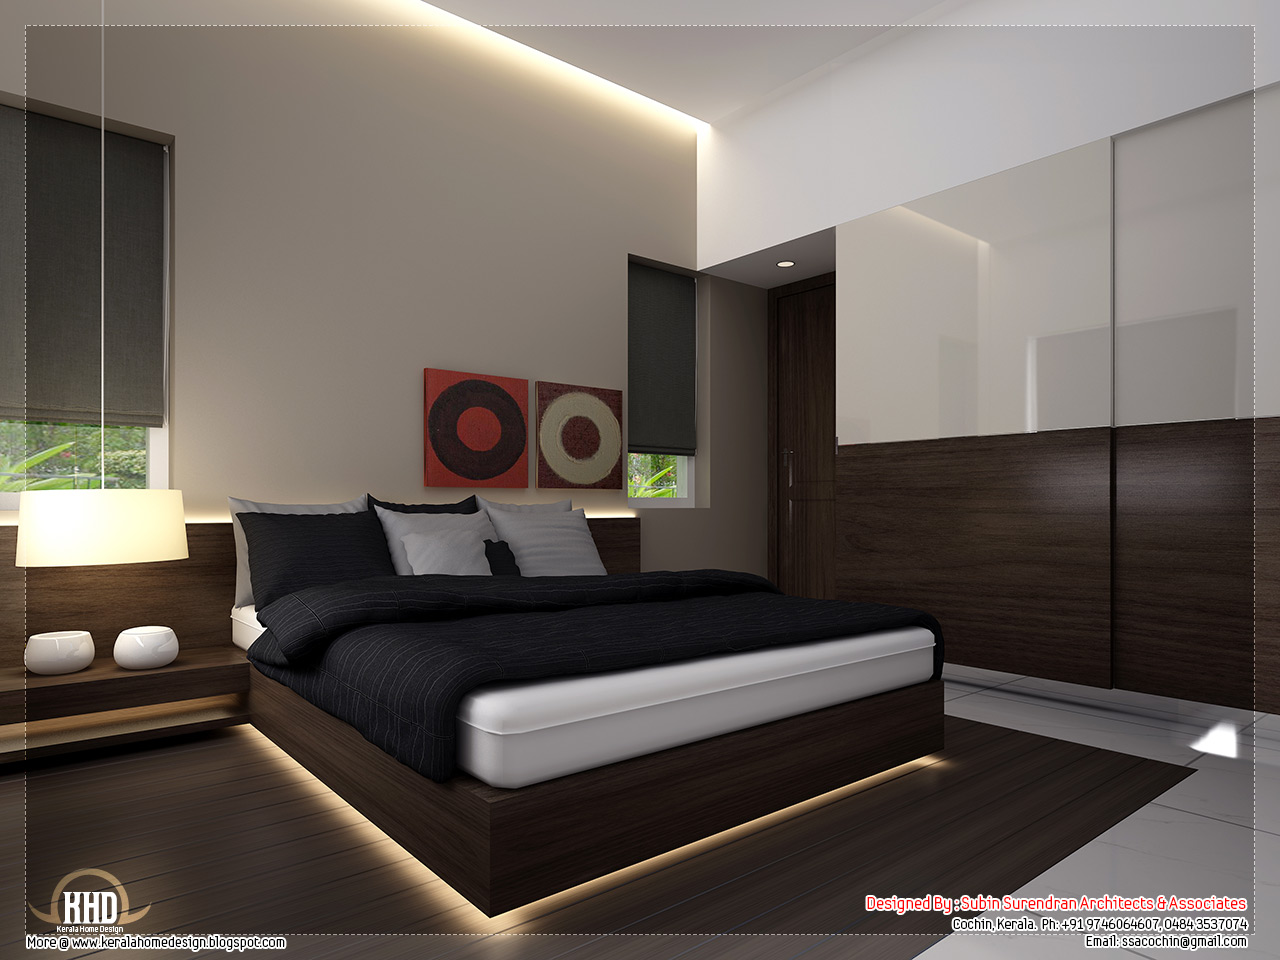 Beautiful home interior designs kerala homes for Bedroom images interior designs